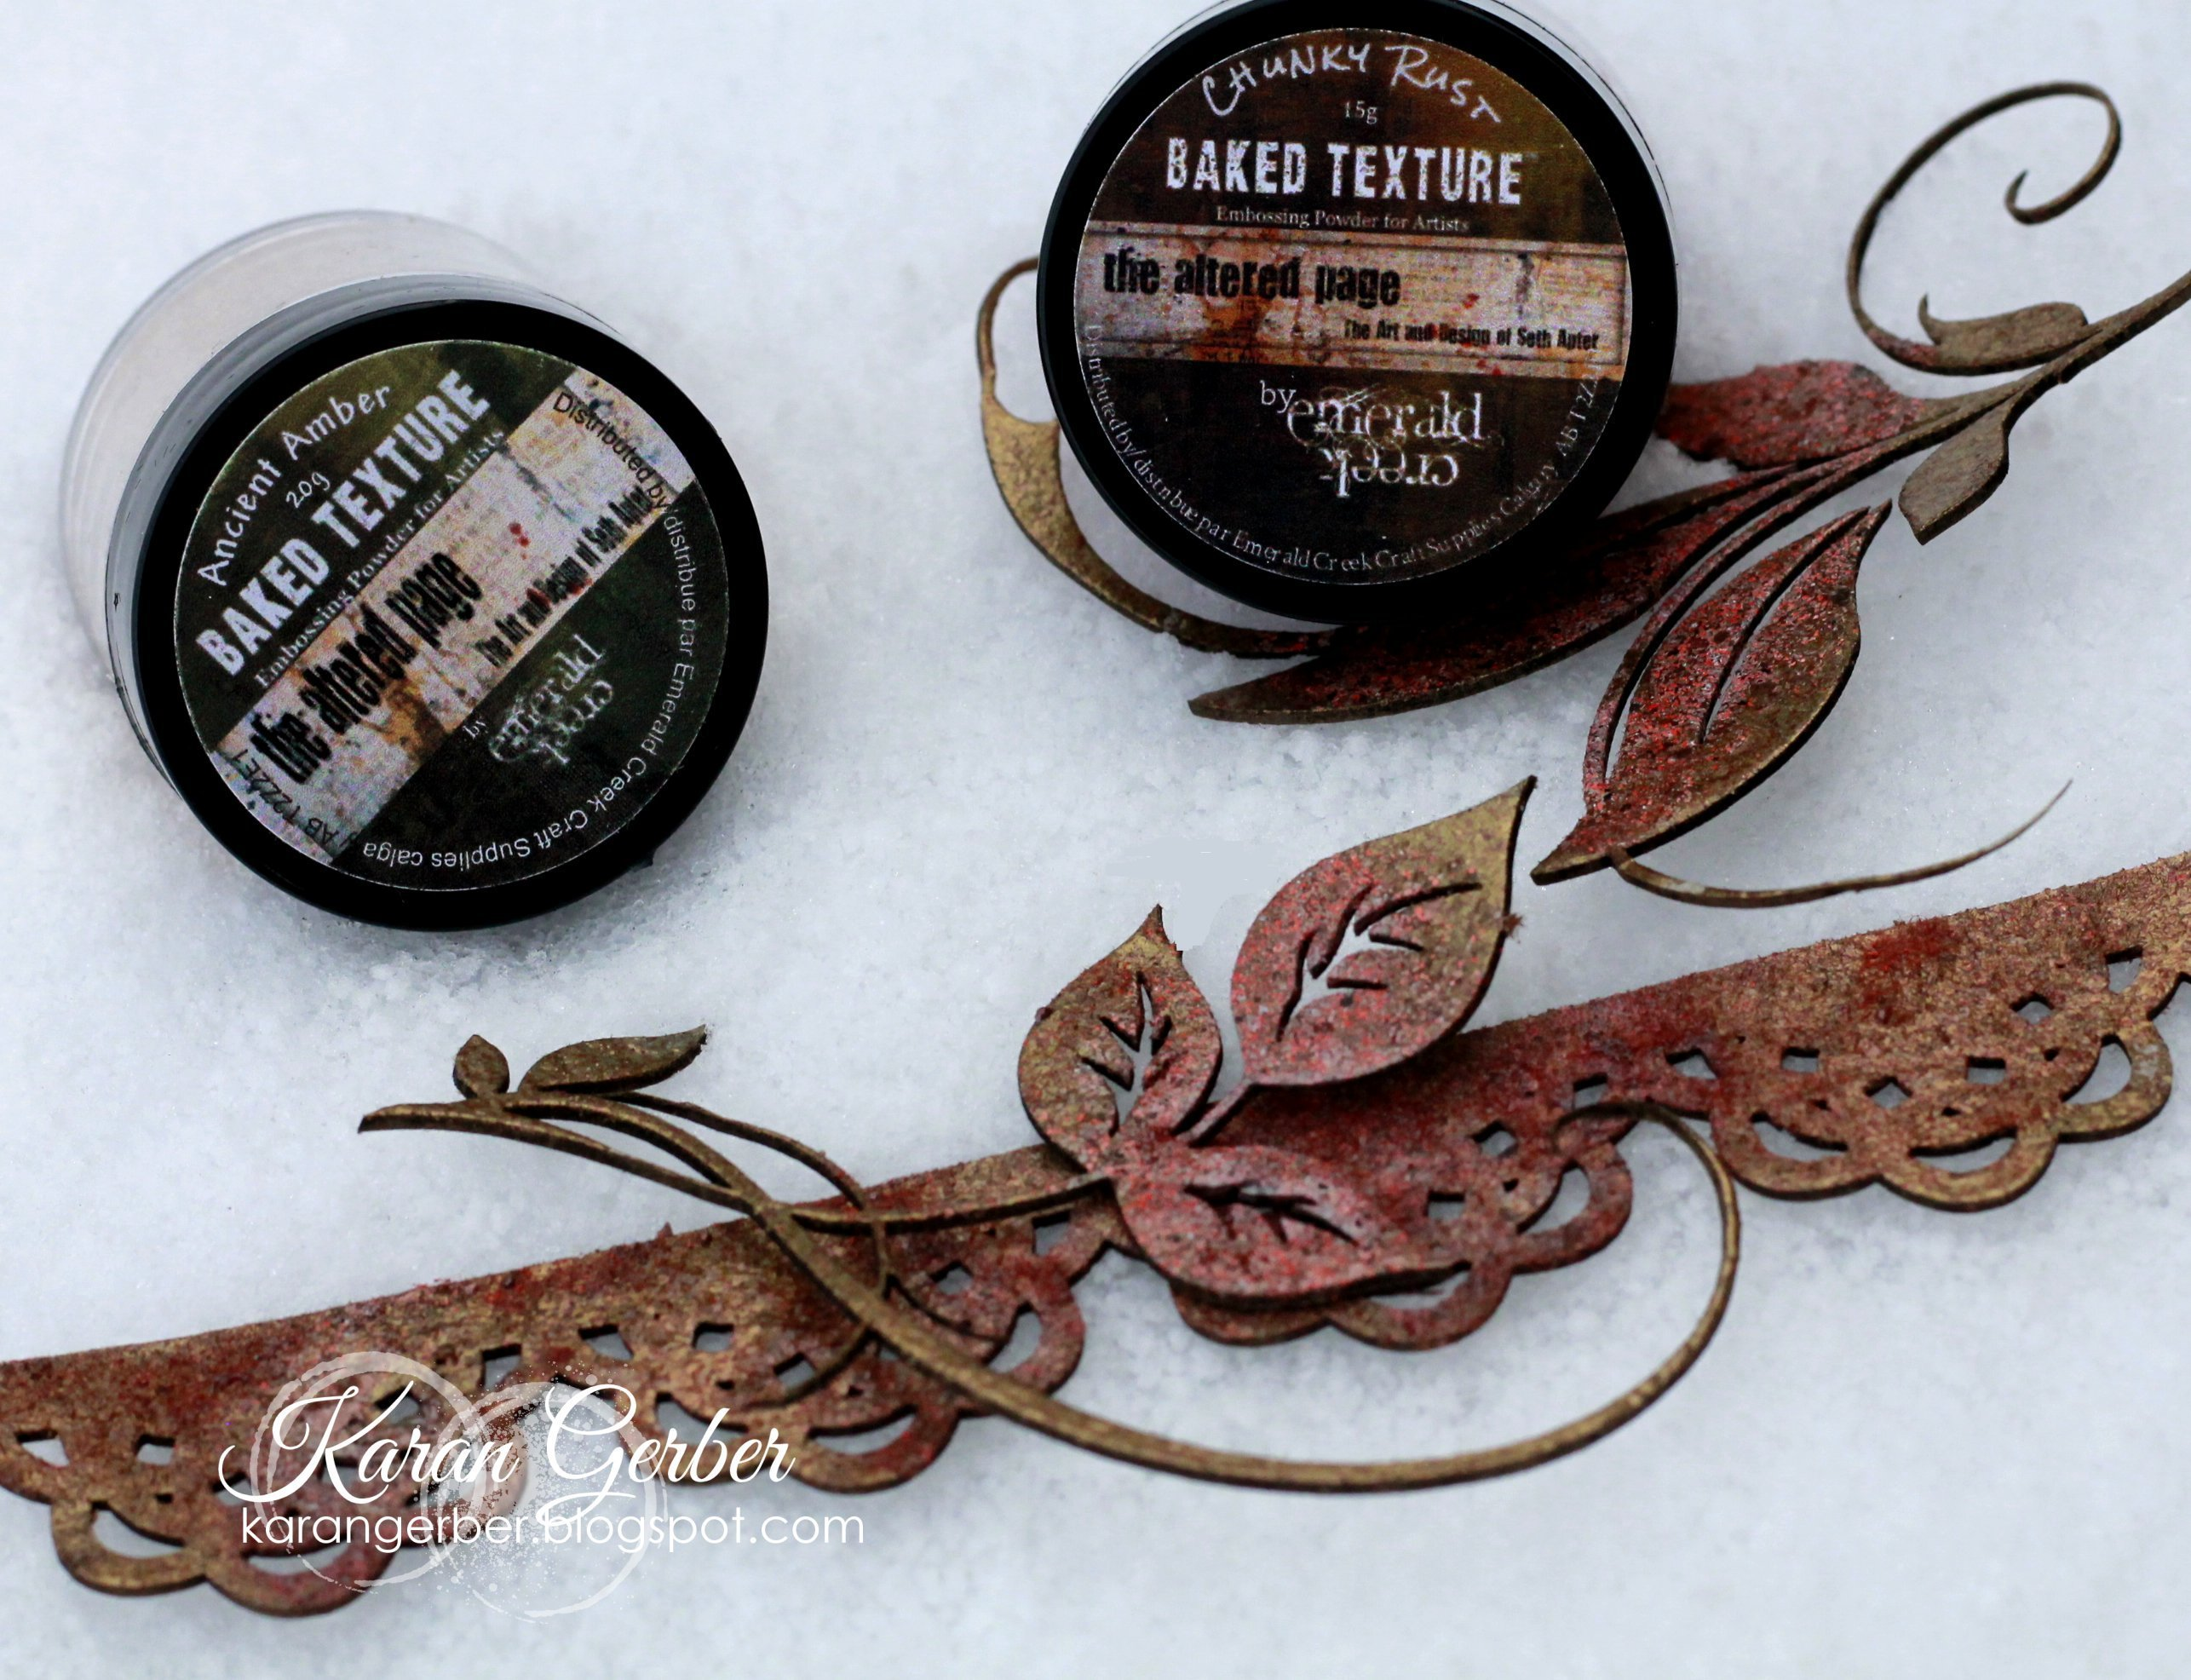 Embossing powders from Emerald Creek